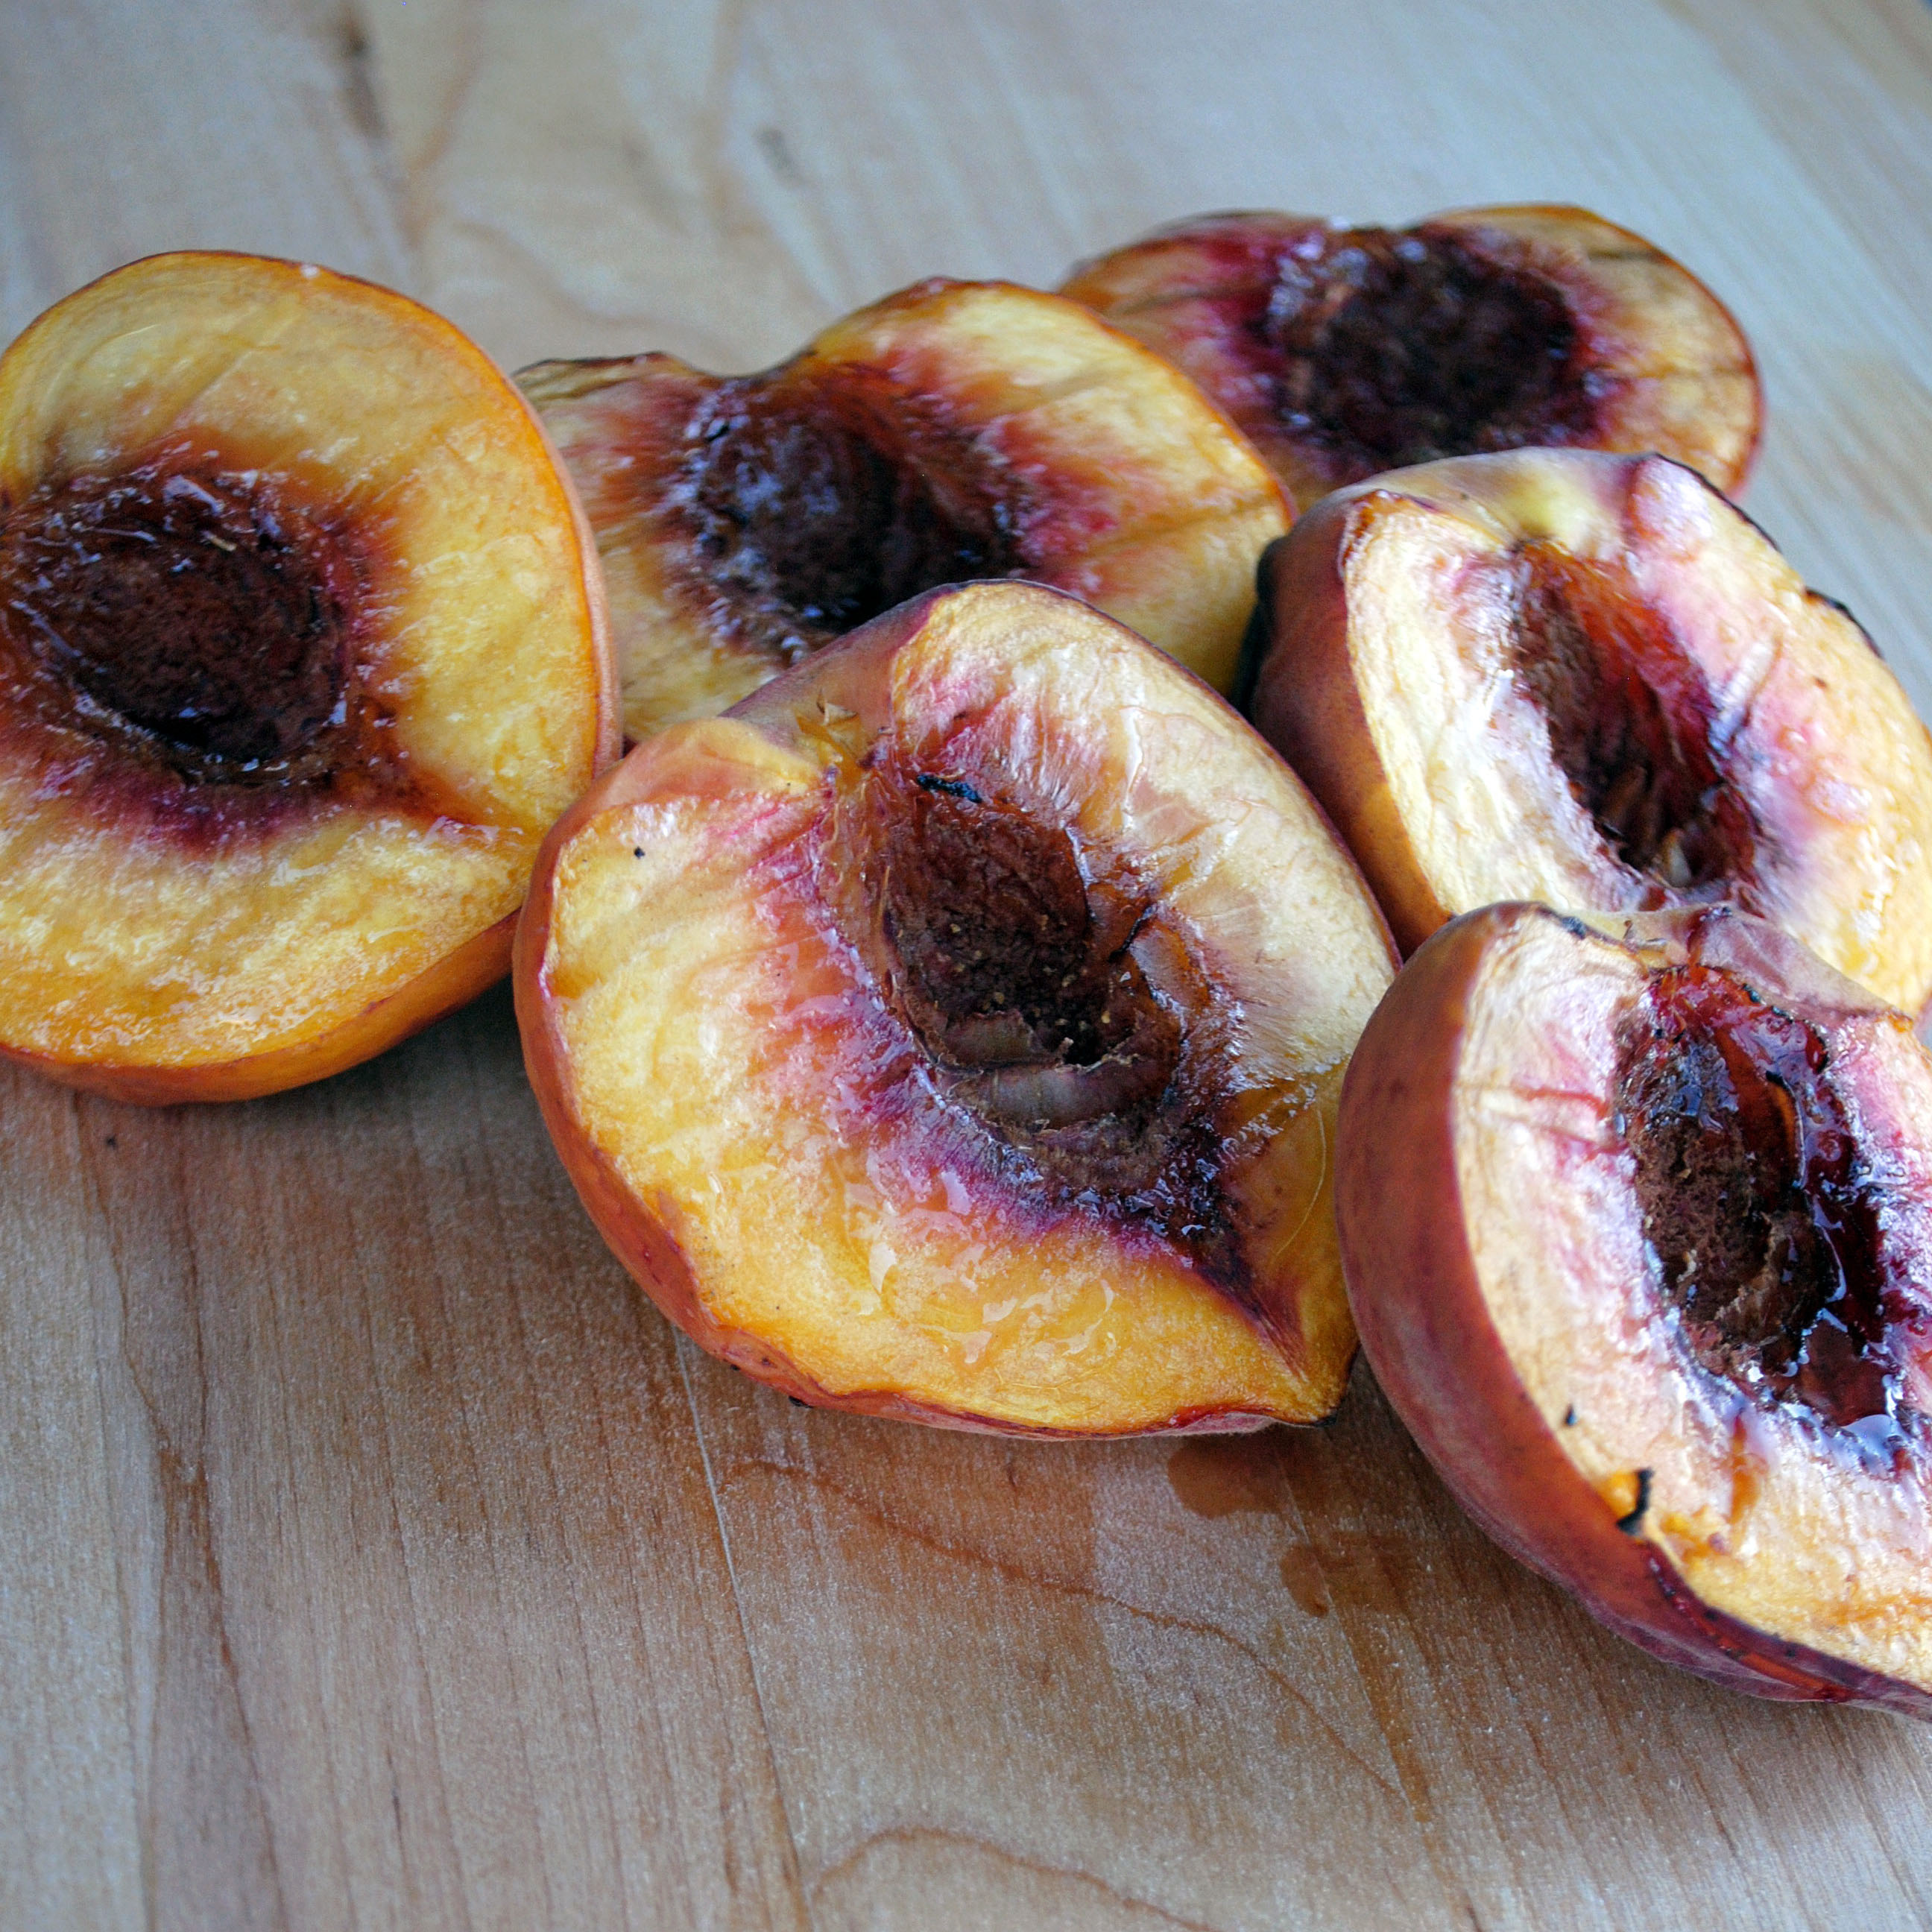 Grilled Peaches a la Mode